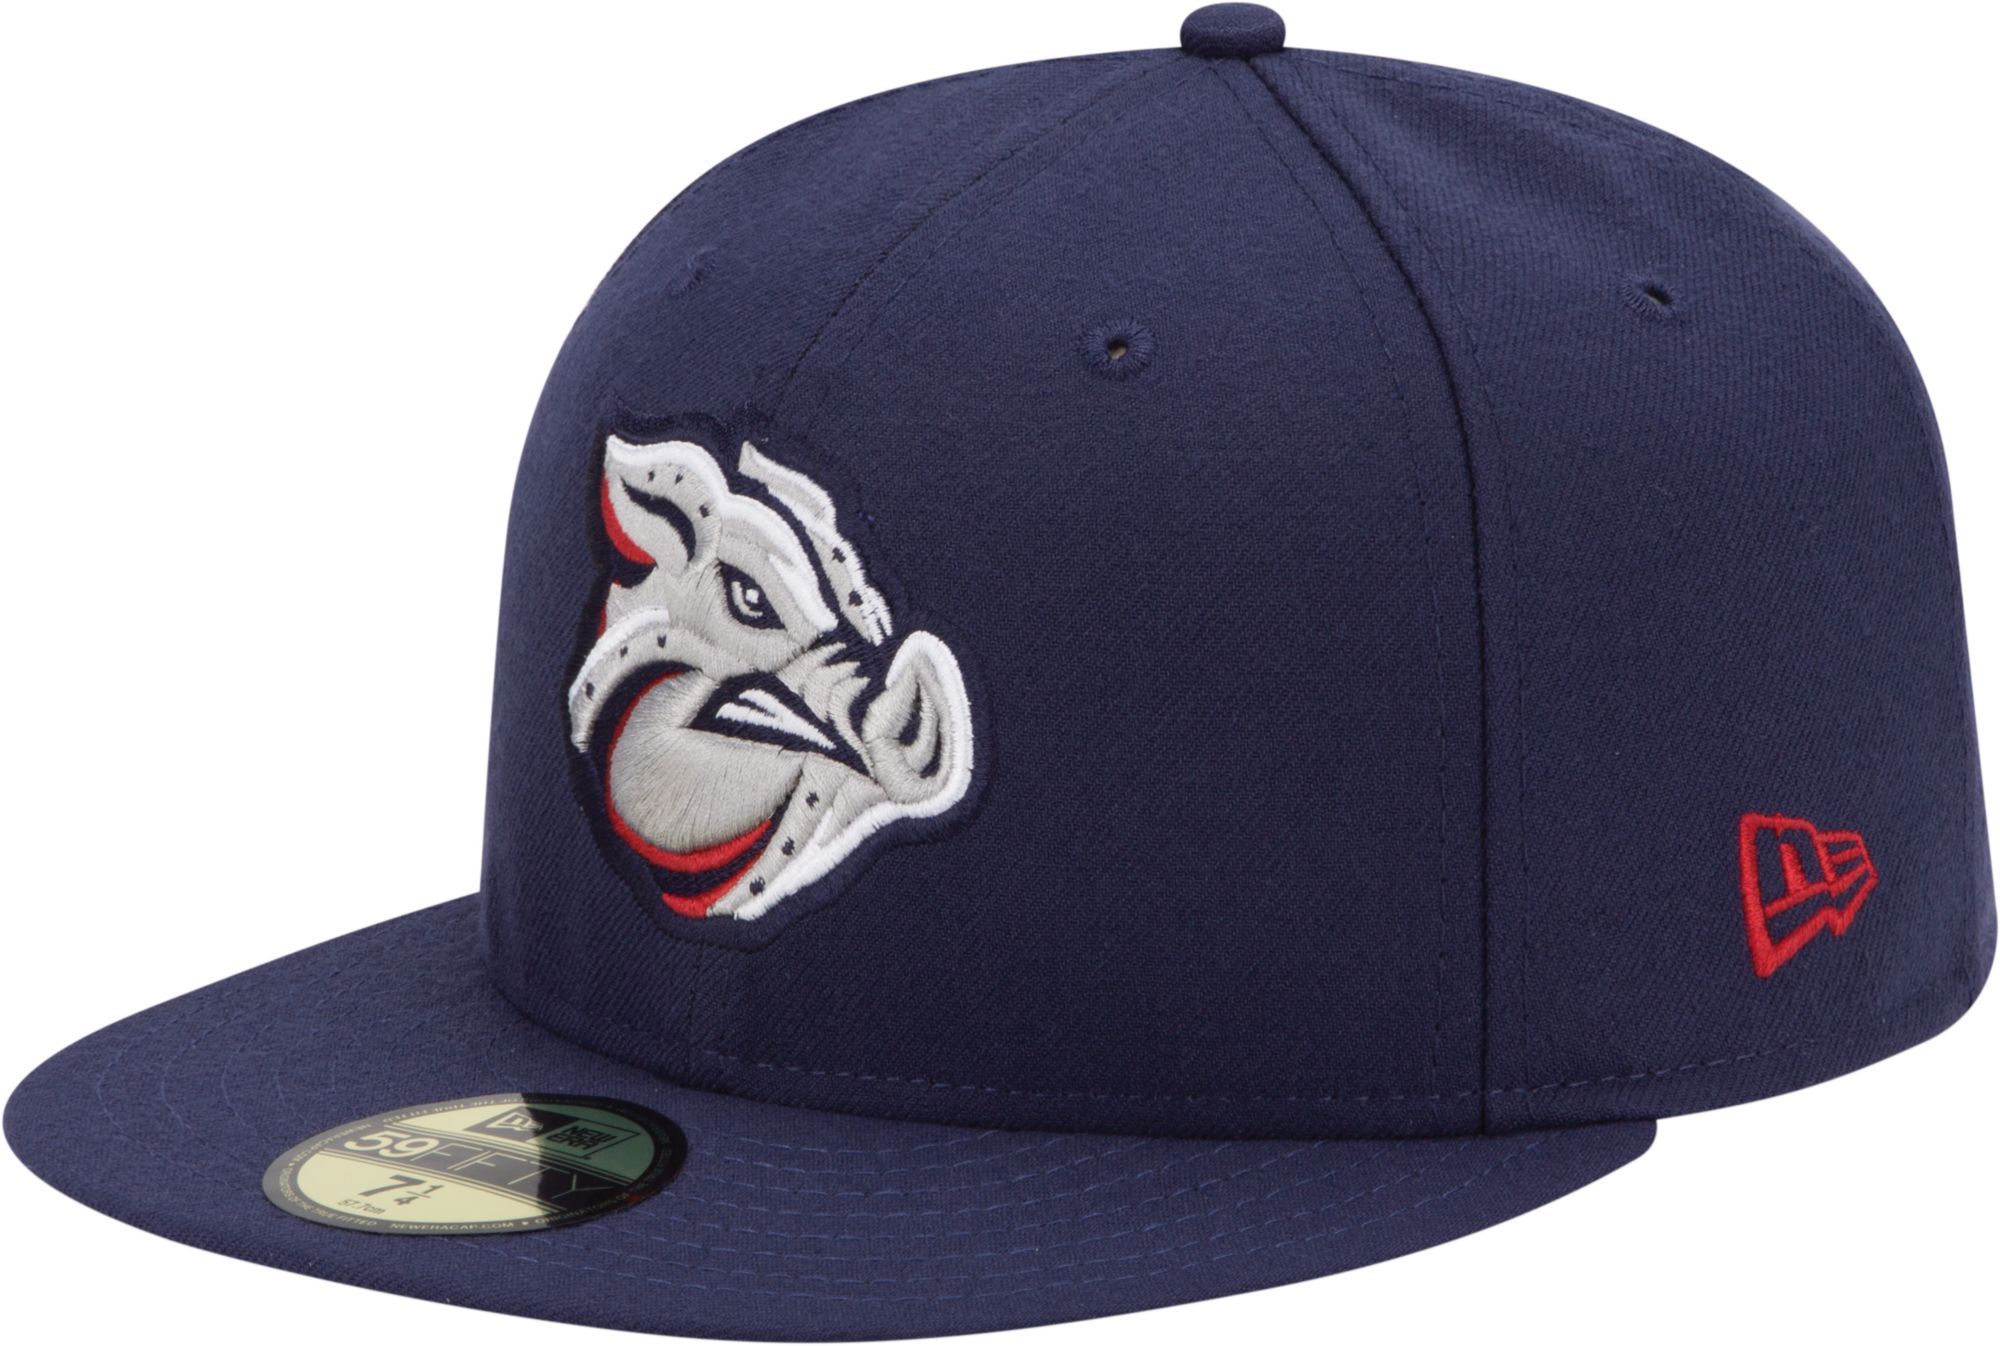 New Era Men's Lehigh Valley IronPigs 59Fifty Navy Authentic Hat, Size: 7 1/4, Multi